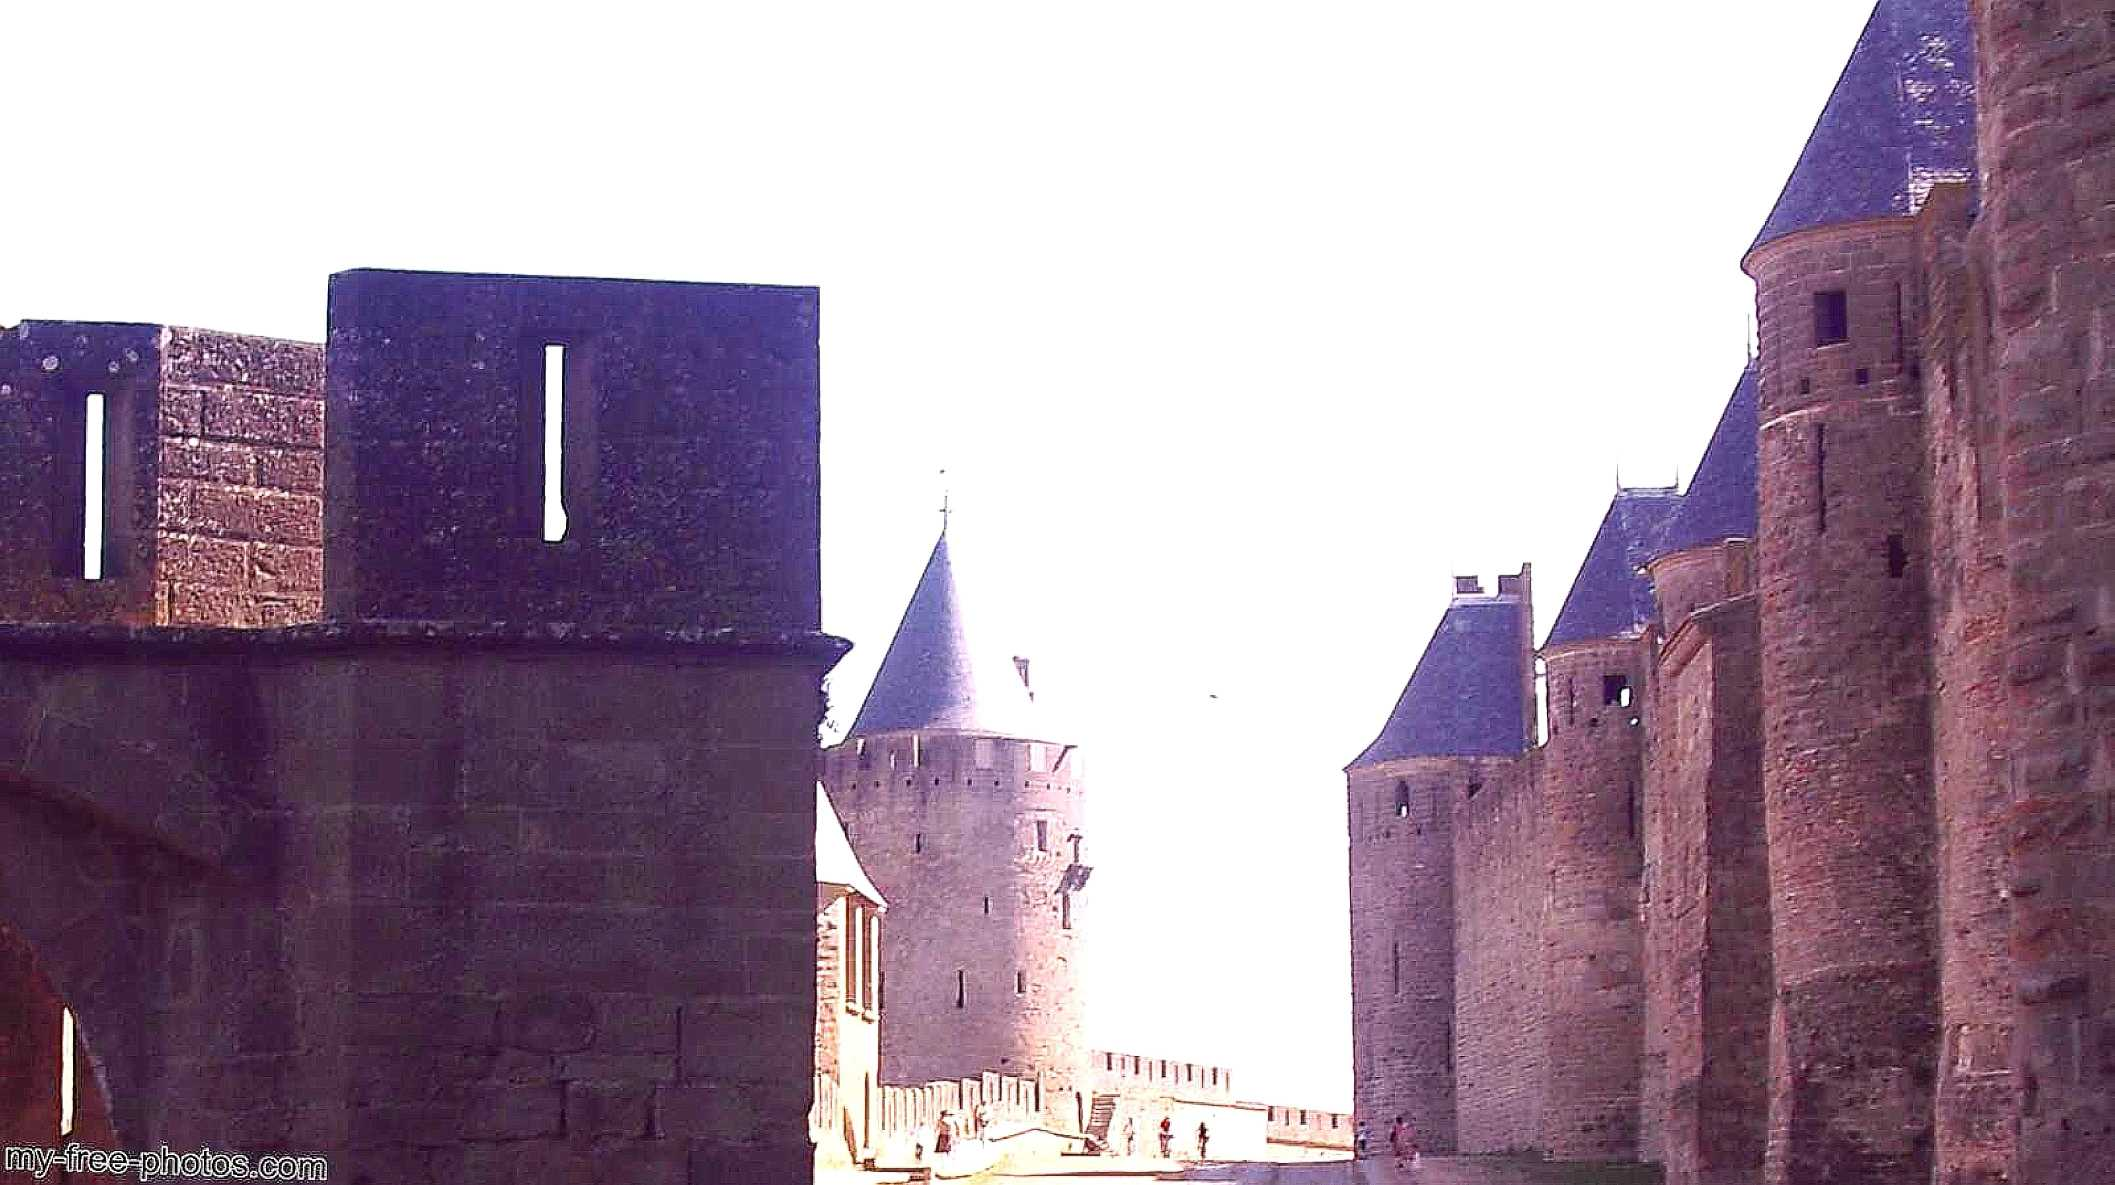 This is Carcassonne, France